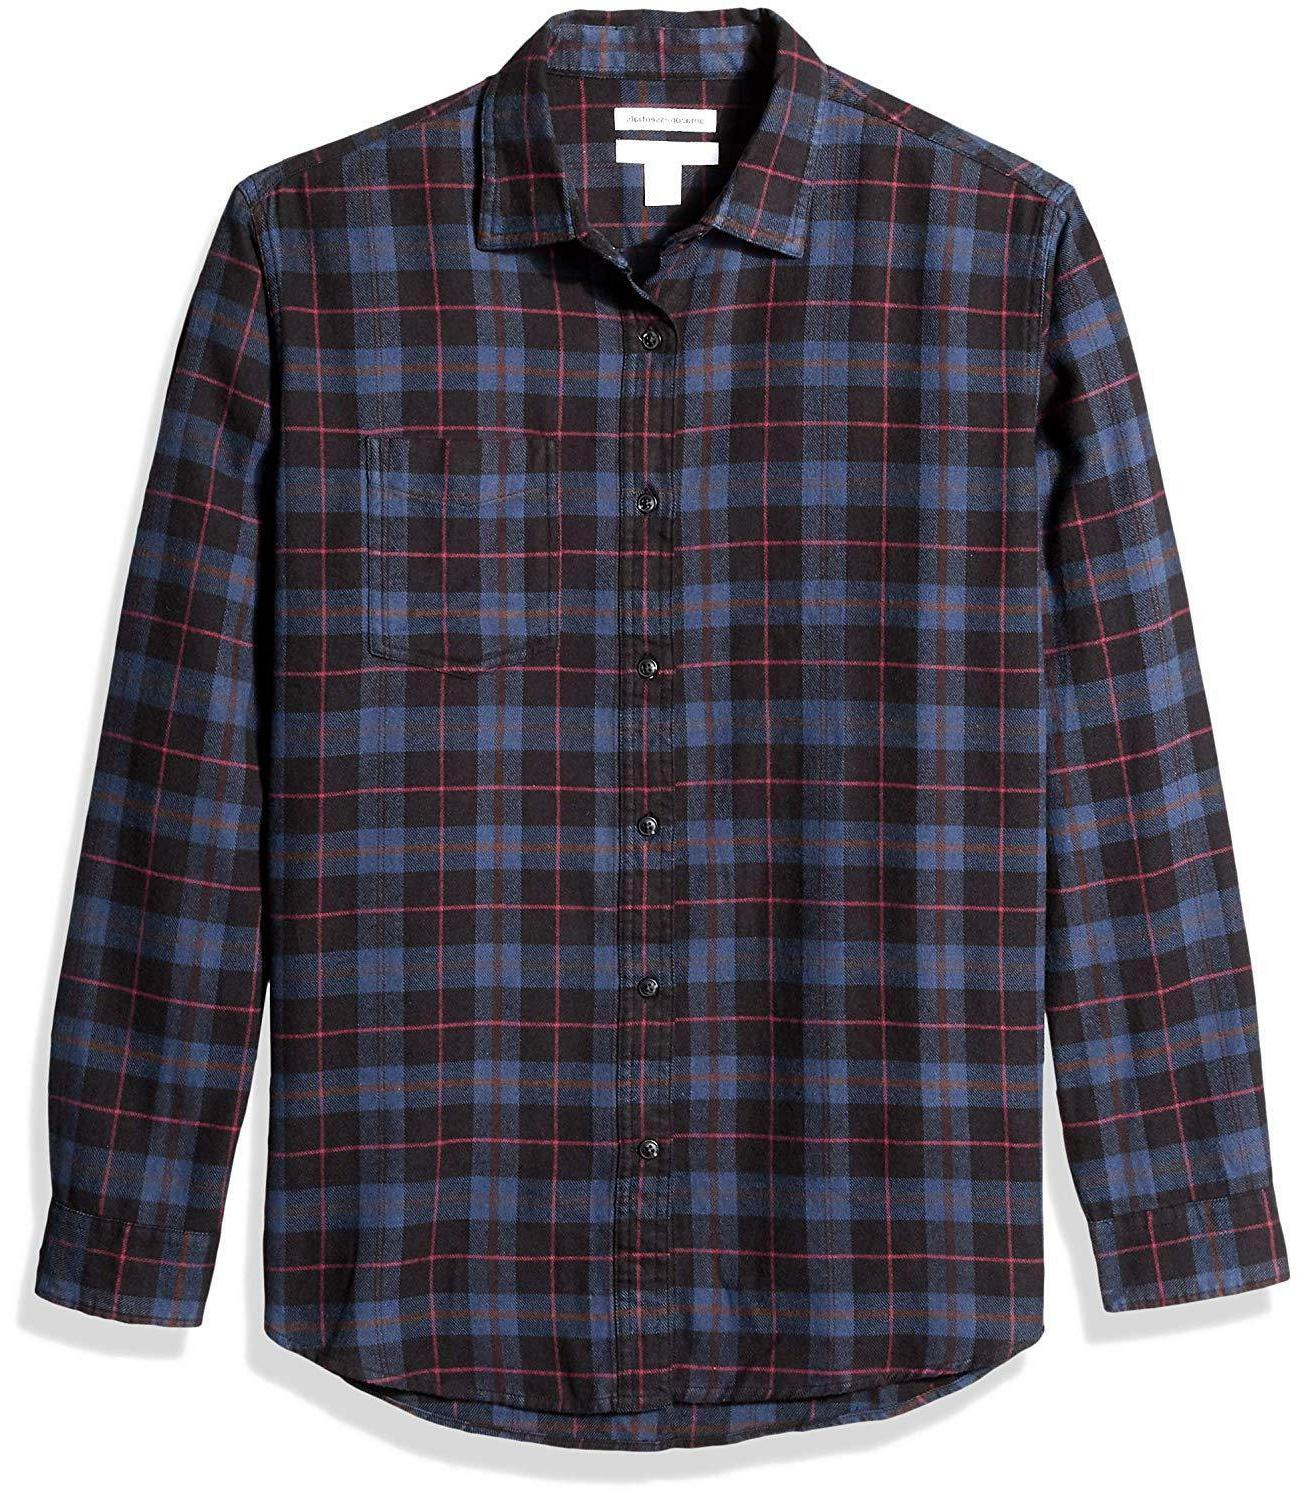 Amazon Regular-Fit Long-Sleeve Plaid Shirt